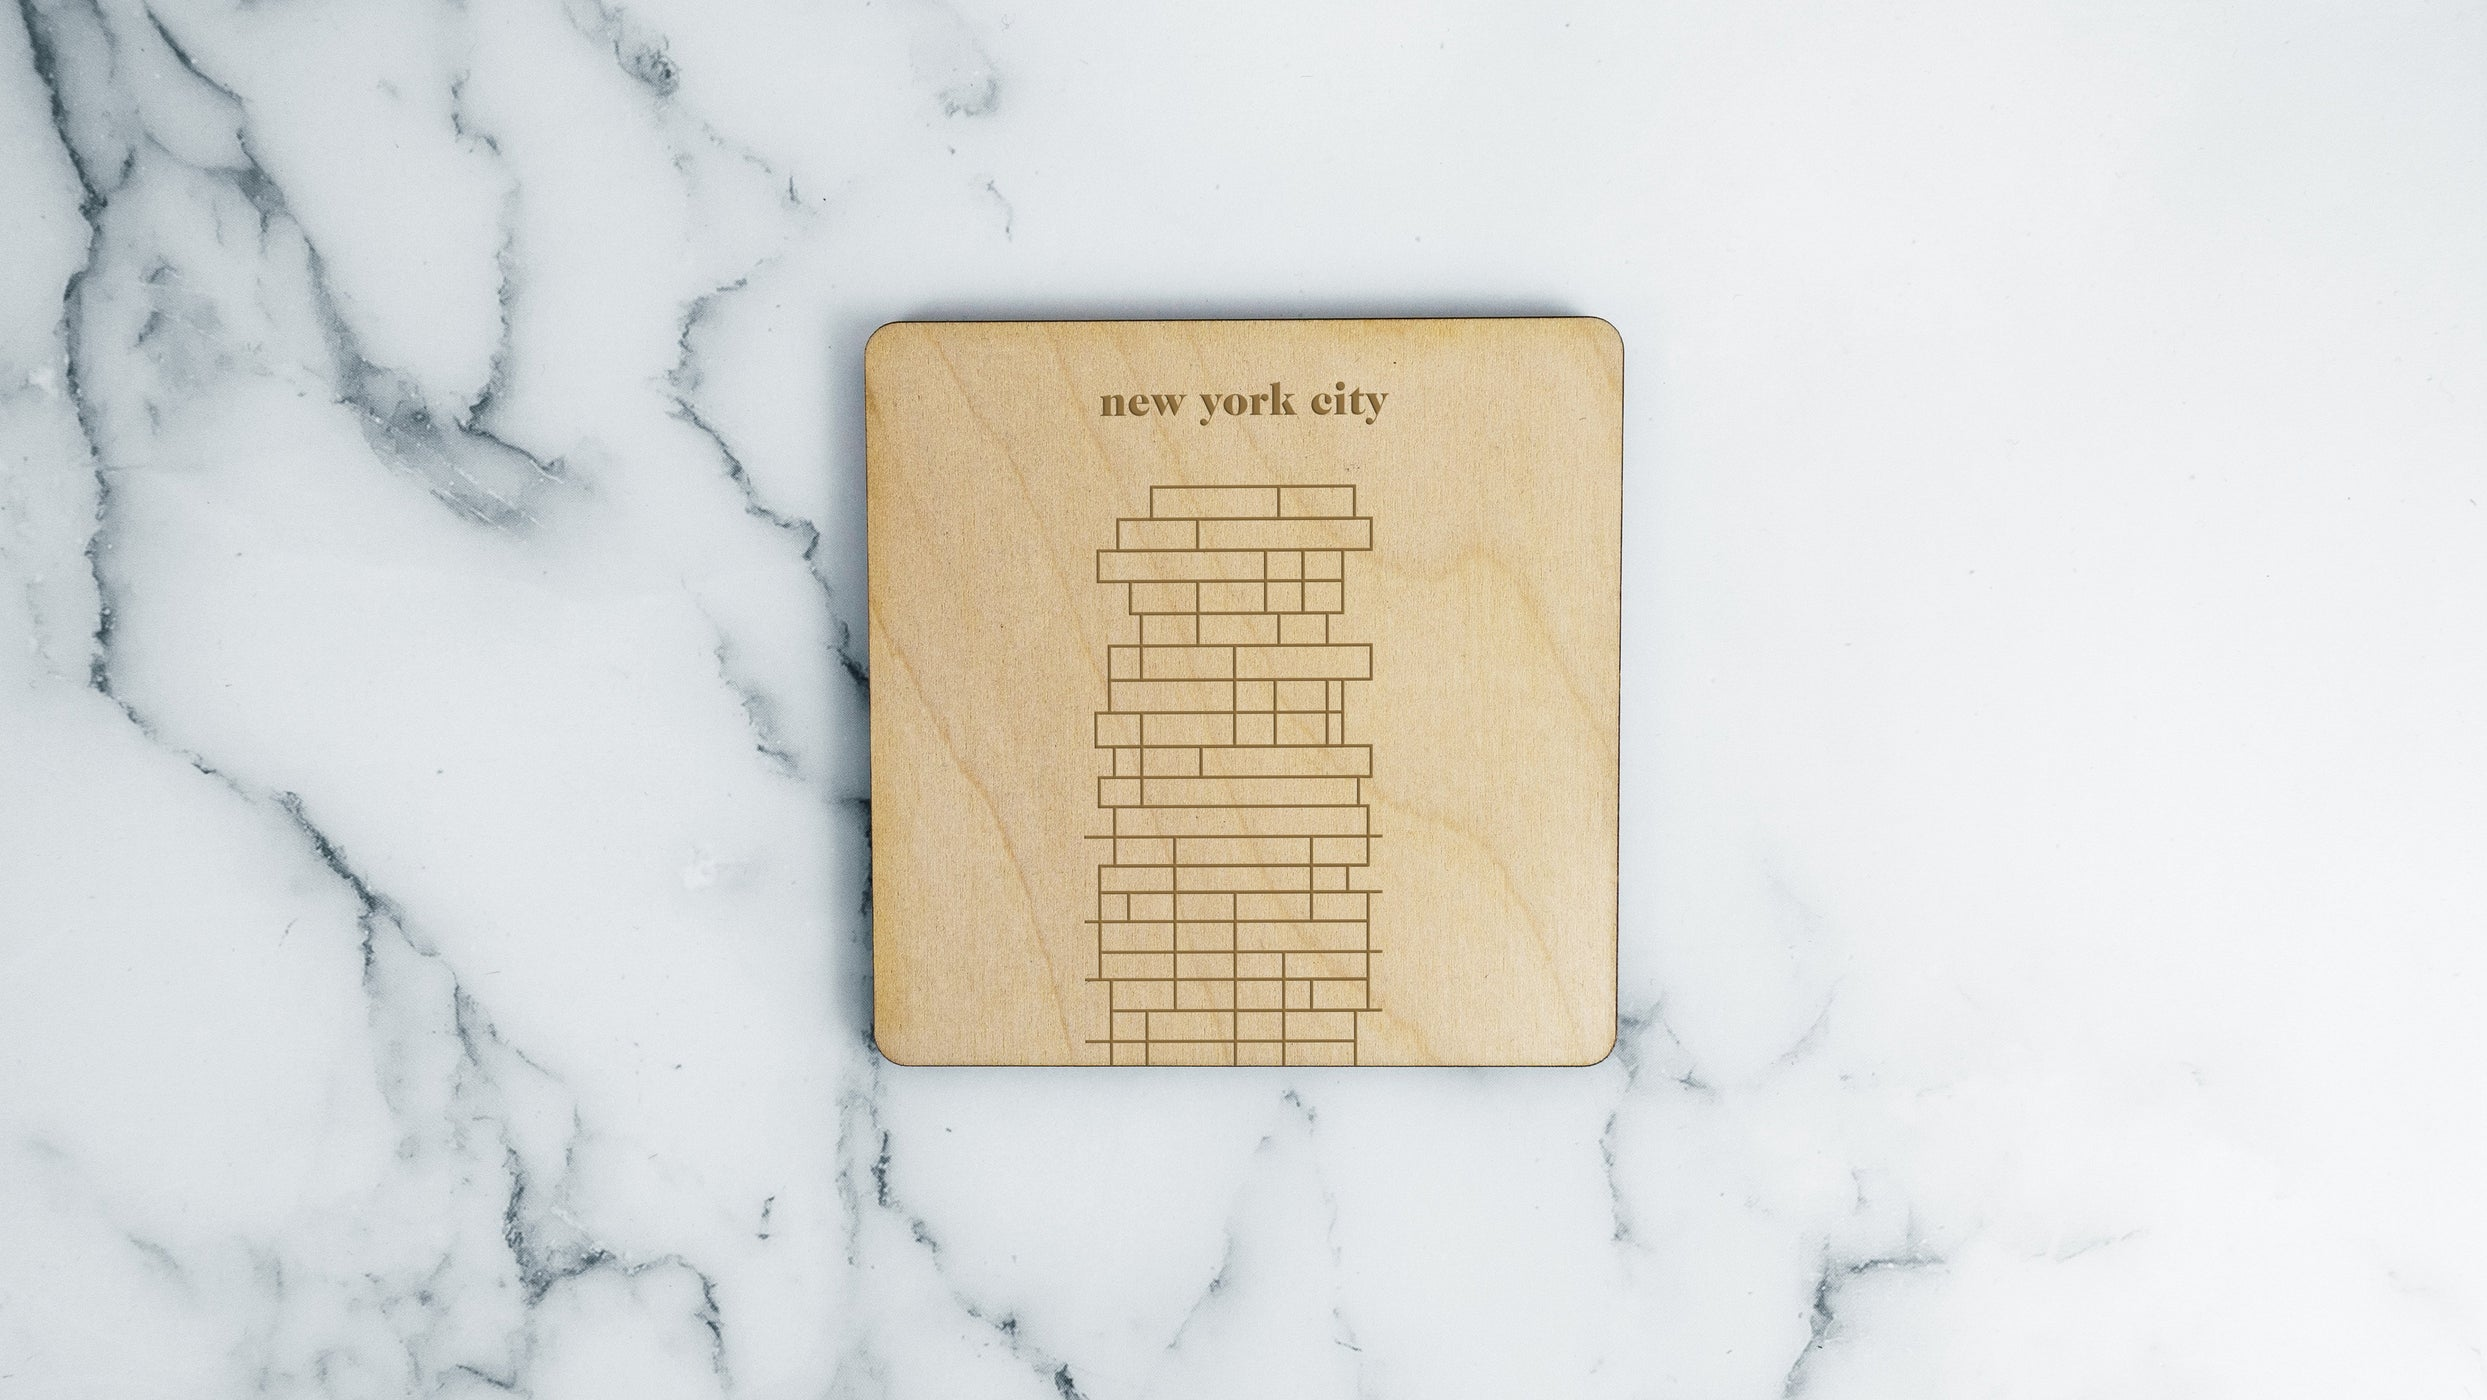 New York City, 56 Leonard Coaster